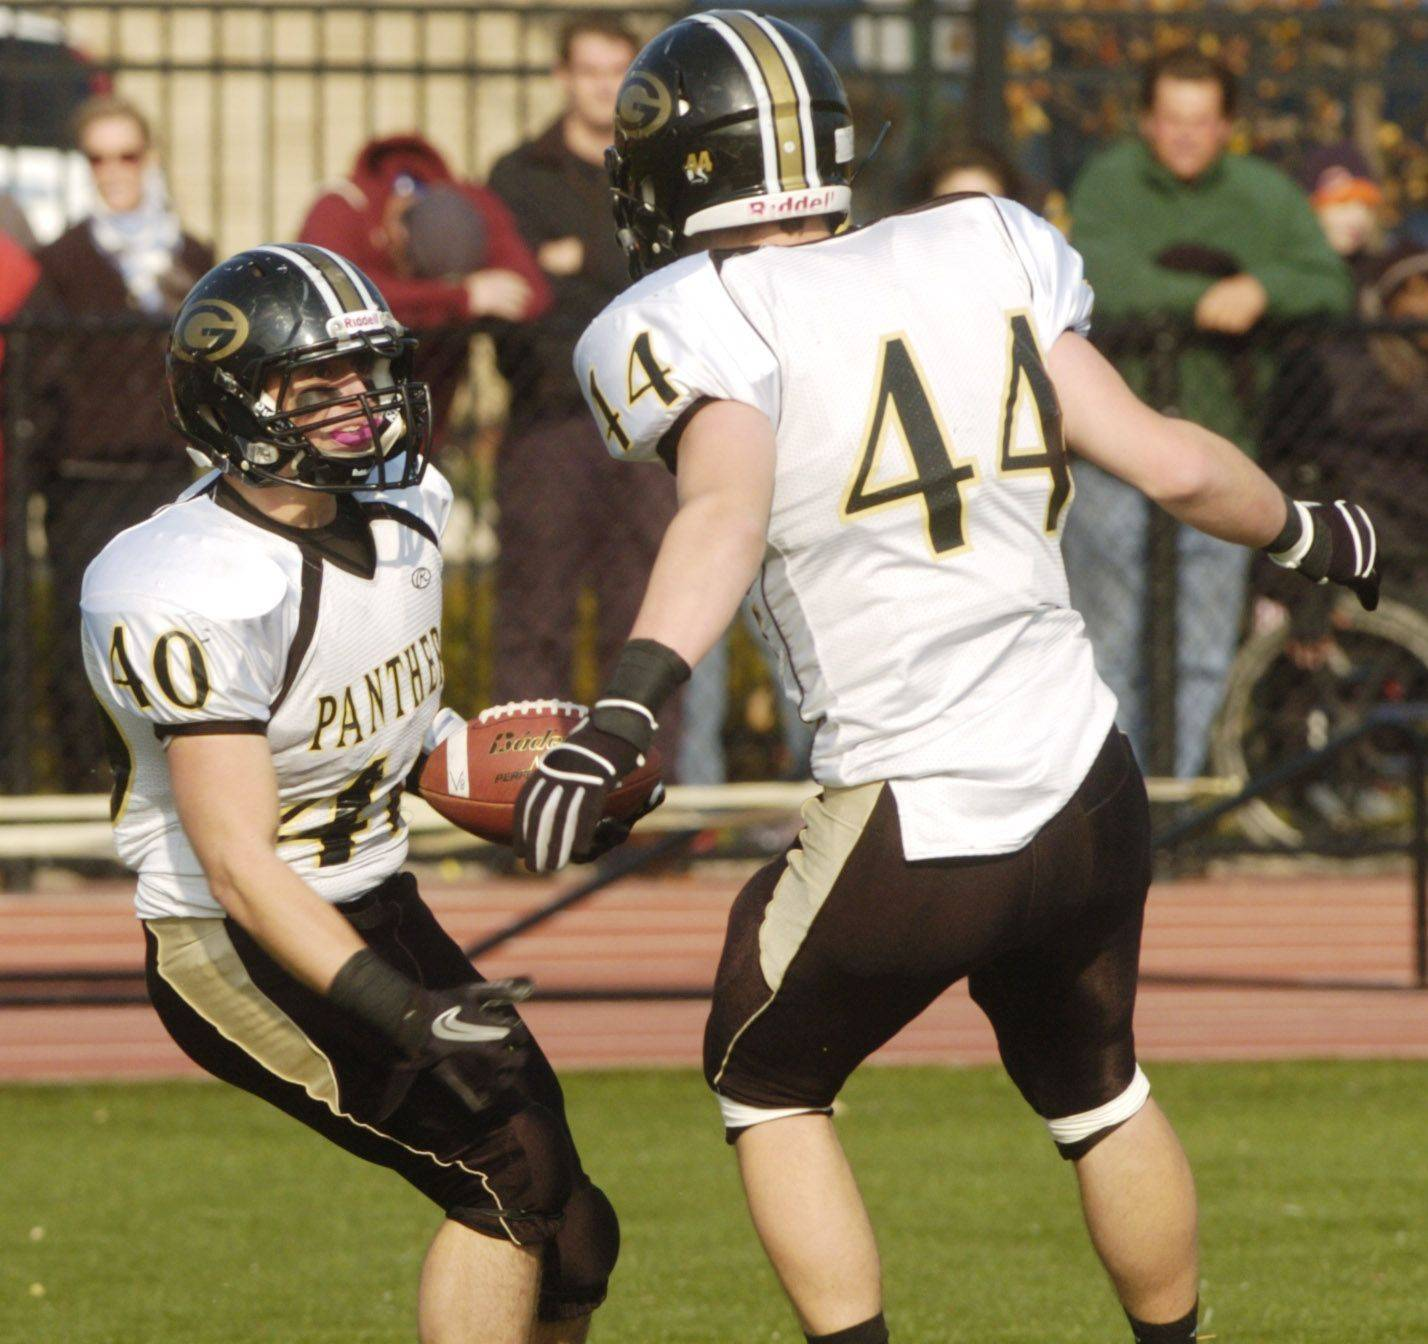 Dominic Fornino of Glenbard North, left, celebrates his touchdown with teammate Andrew Mulshine.